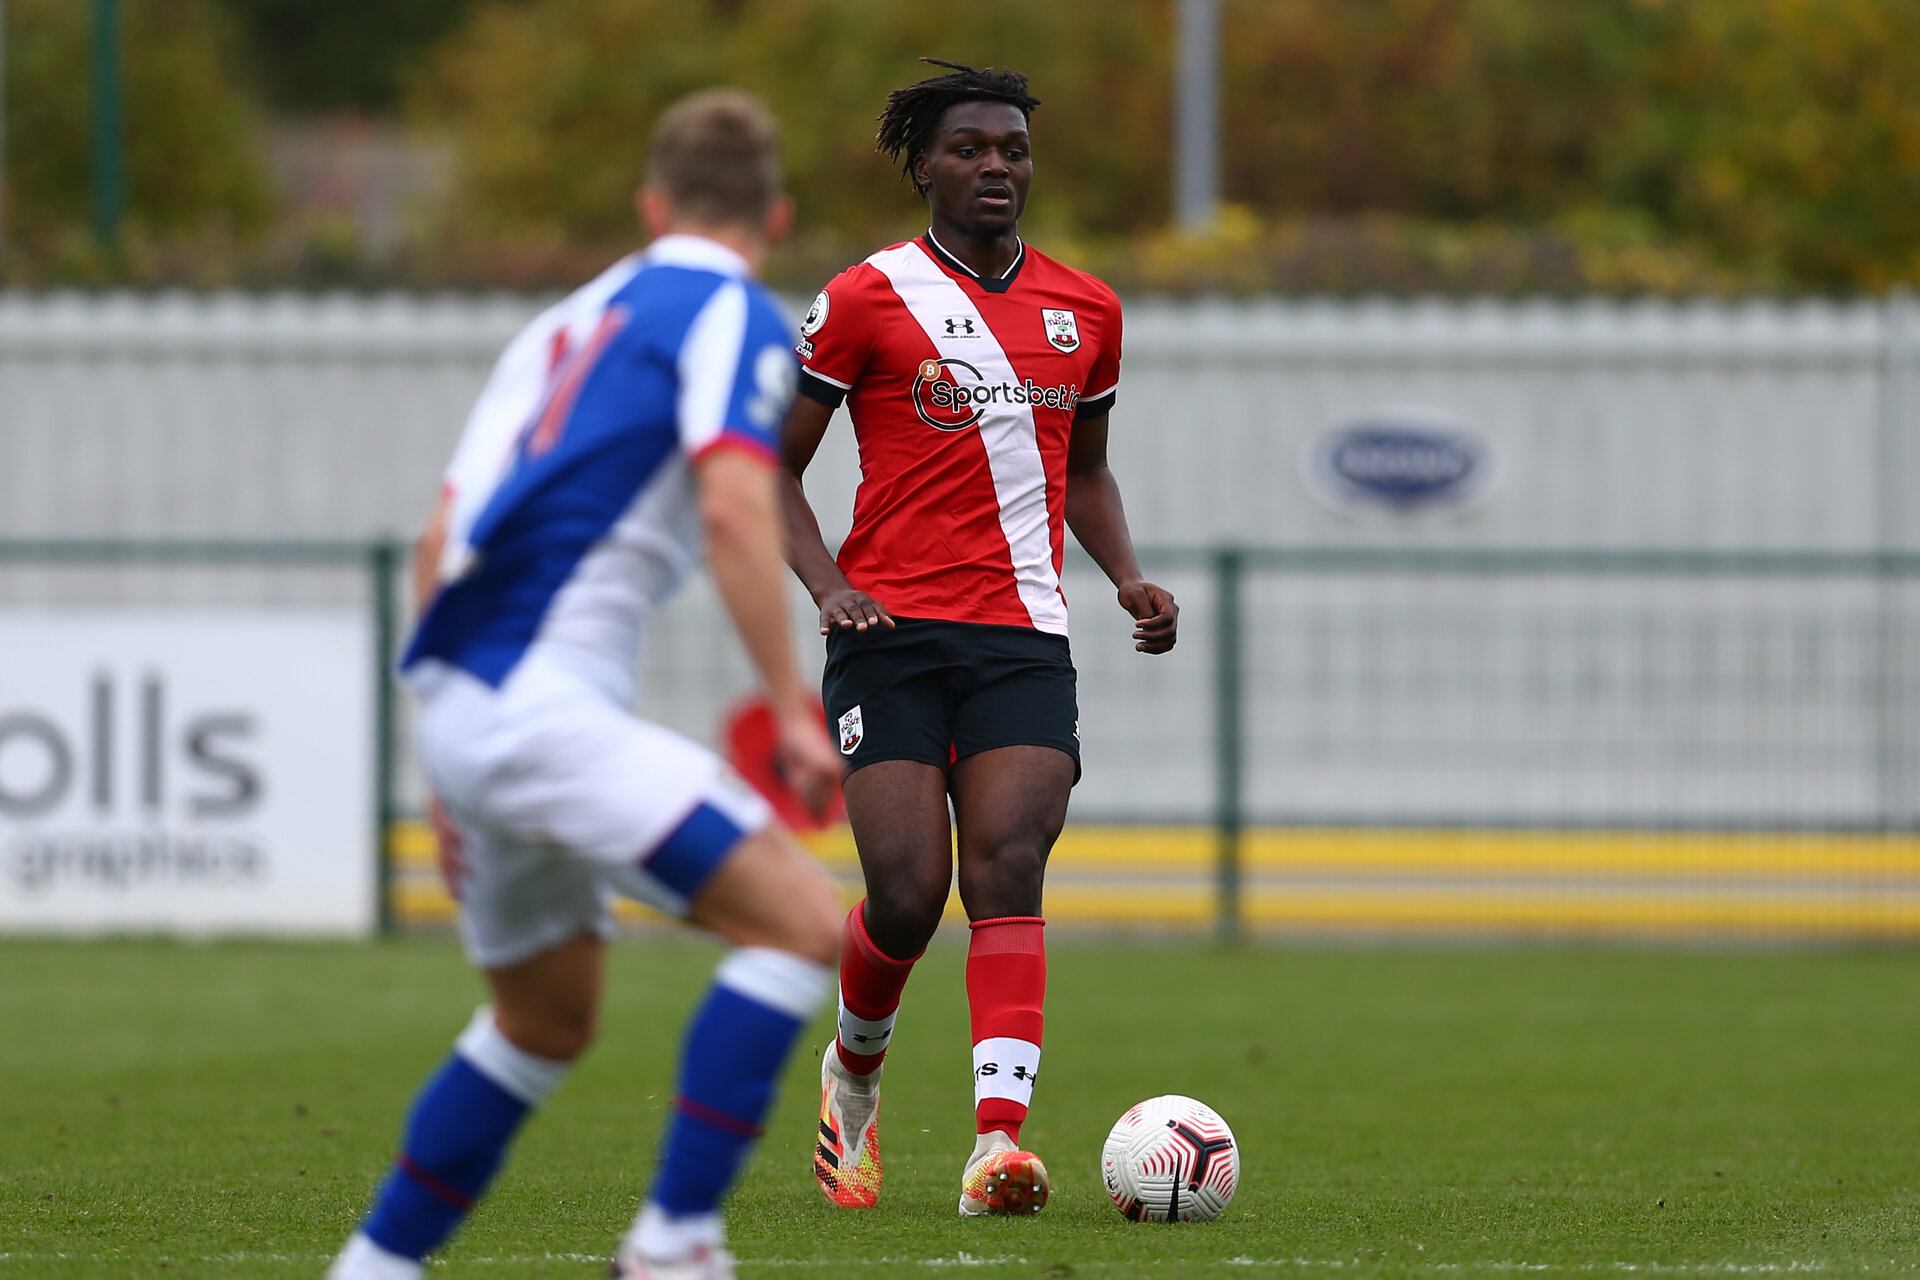 SOUTHAMPTON, ENGLAND - OCTOBER 18: Allan Tchaptchet of Southampton  during the Premier League 2 match between Southampton FC B Team and Blackburn Rovers FC at Snows Stadium on October 18, 2020 in Southamtpon, United Kingdom. (Photo by Isabelle Field/Southampton FC via Getty Images)